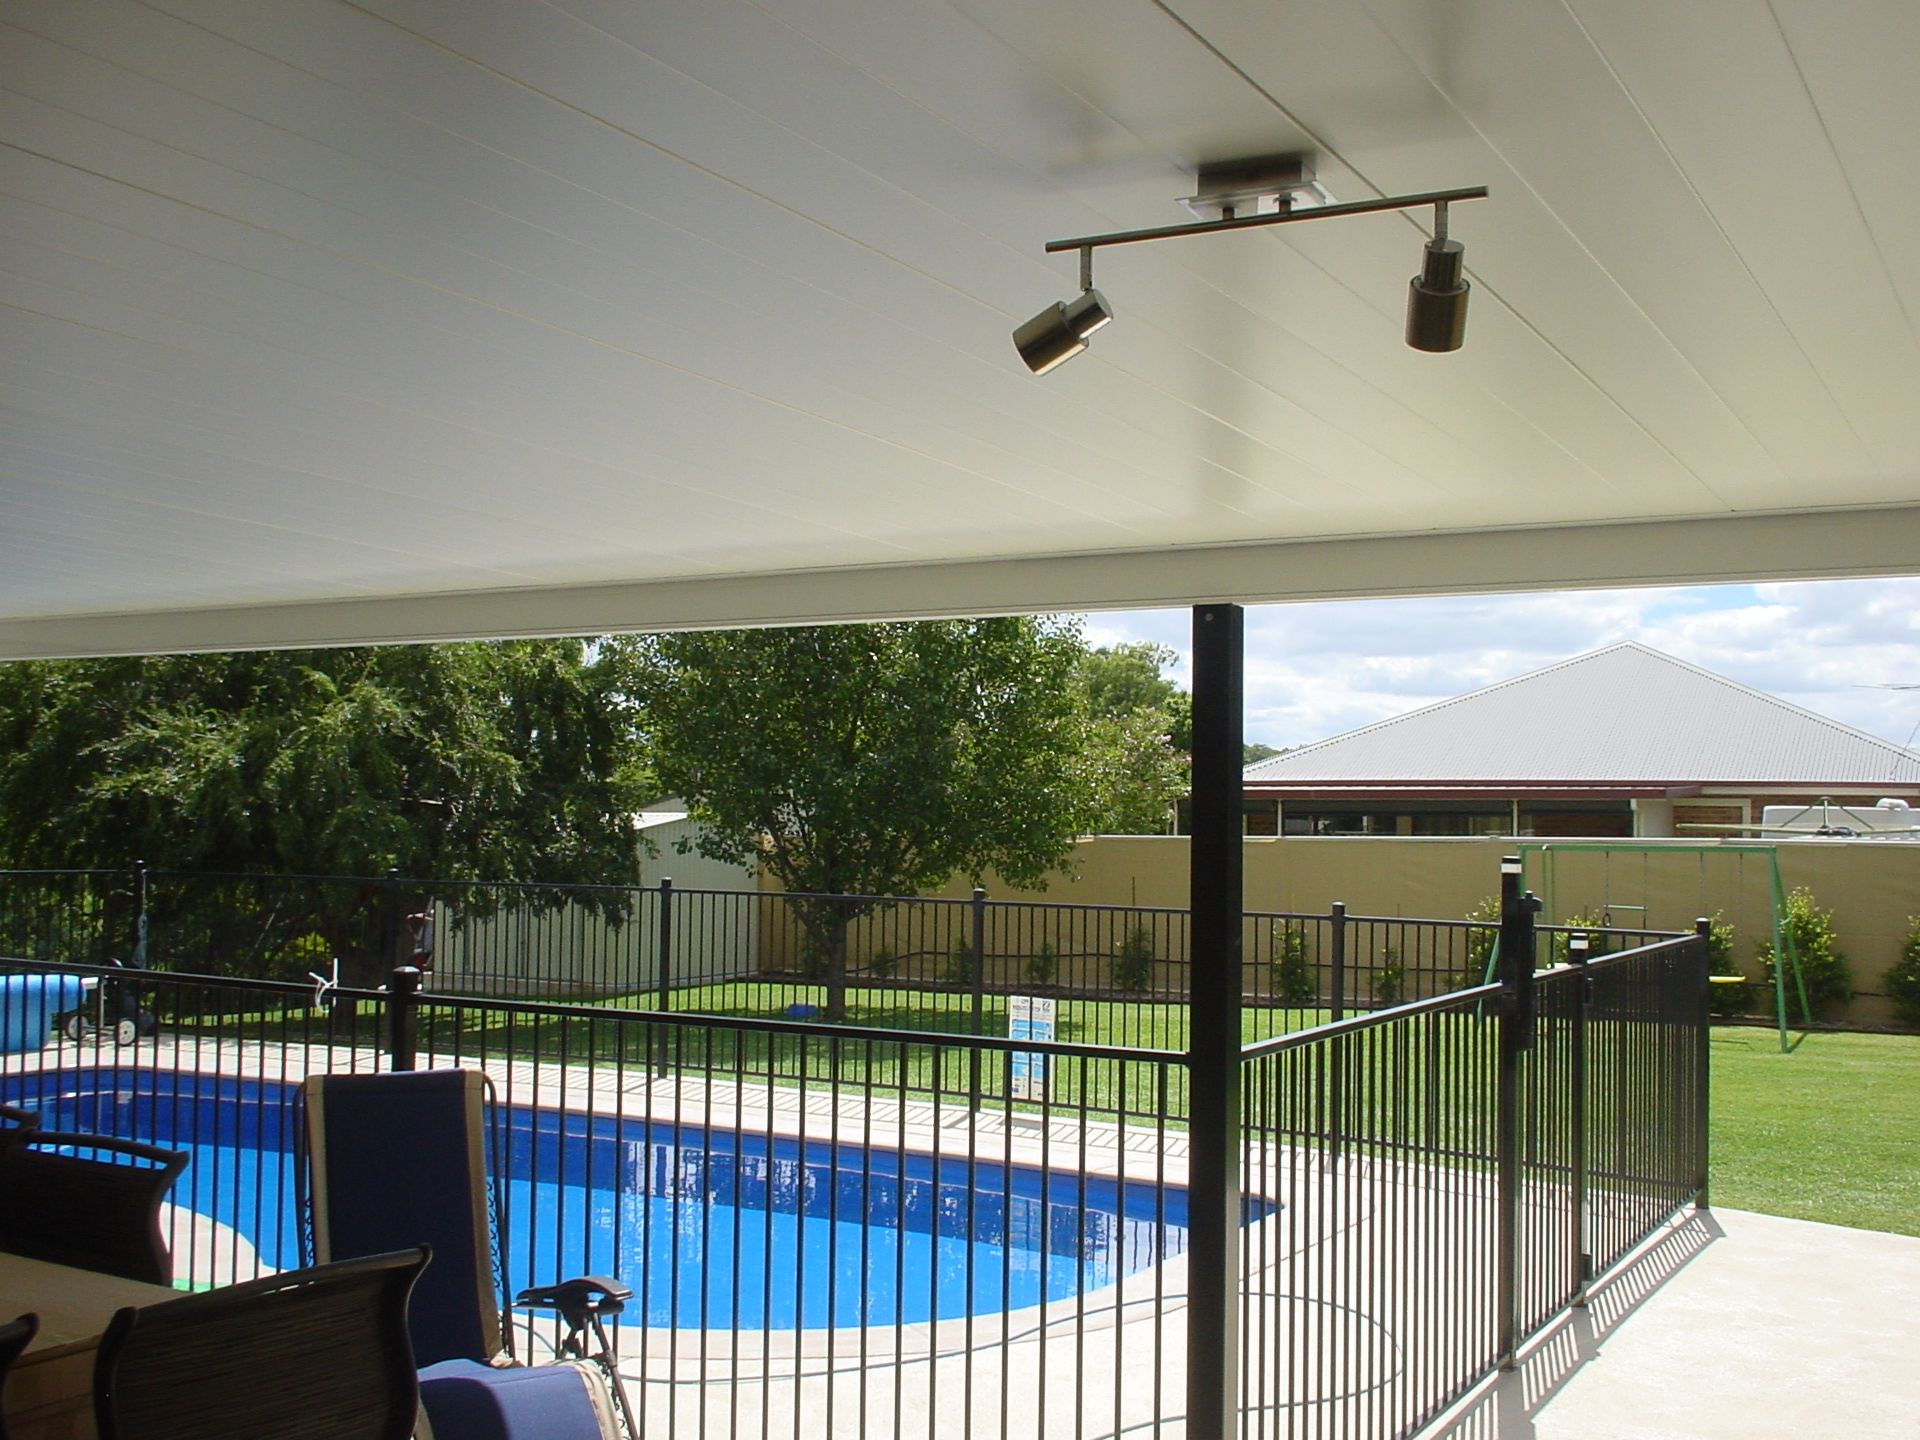 Poolside Patio Cover With Insulated Roof Panels And Lighting Fitted Roof Panels Poolside Covered Patio